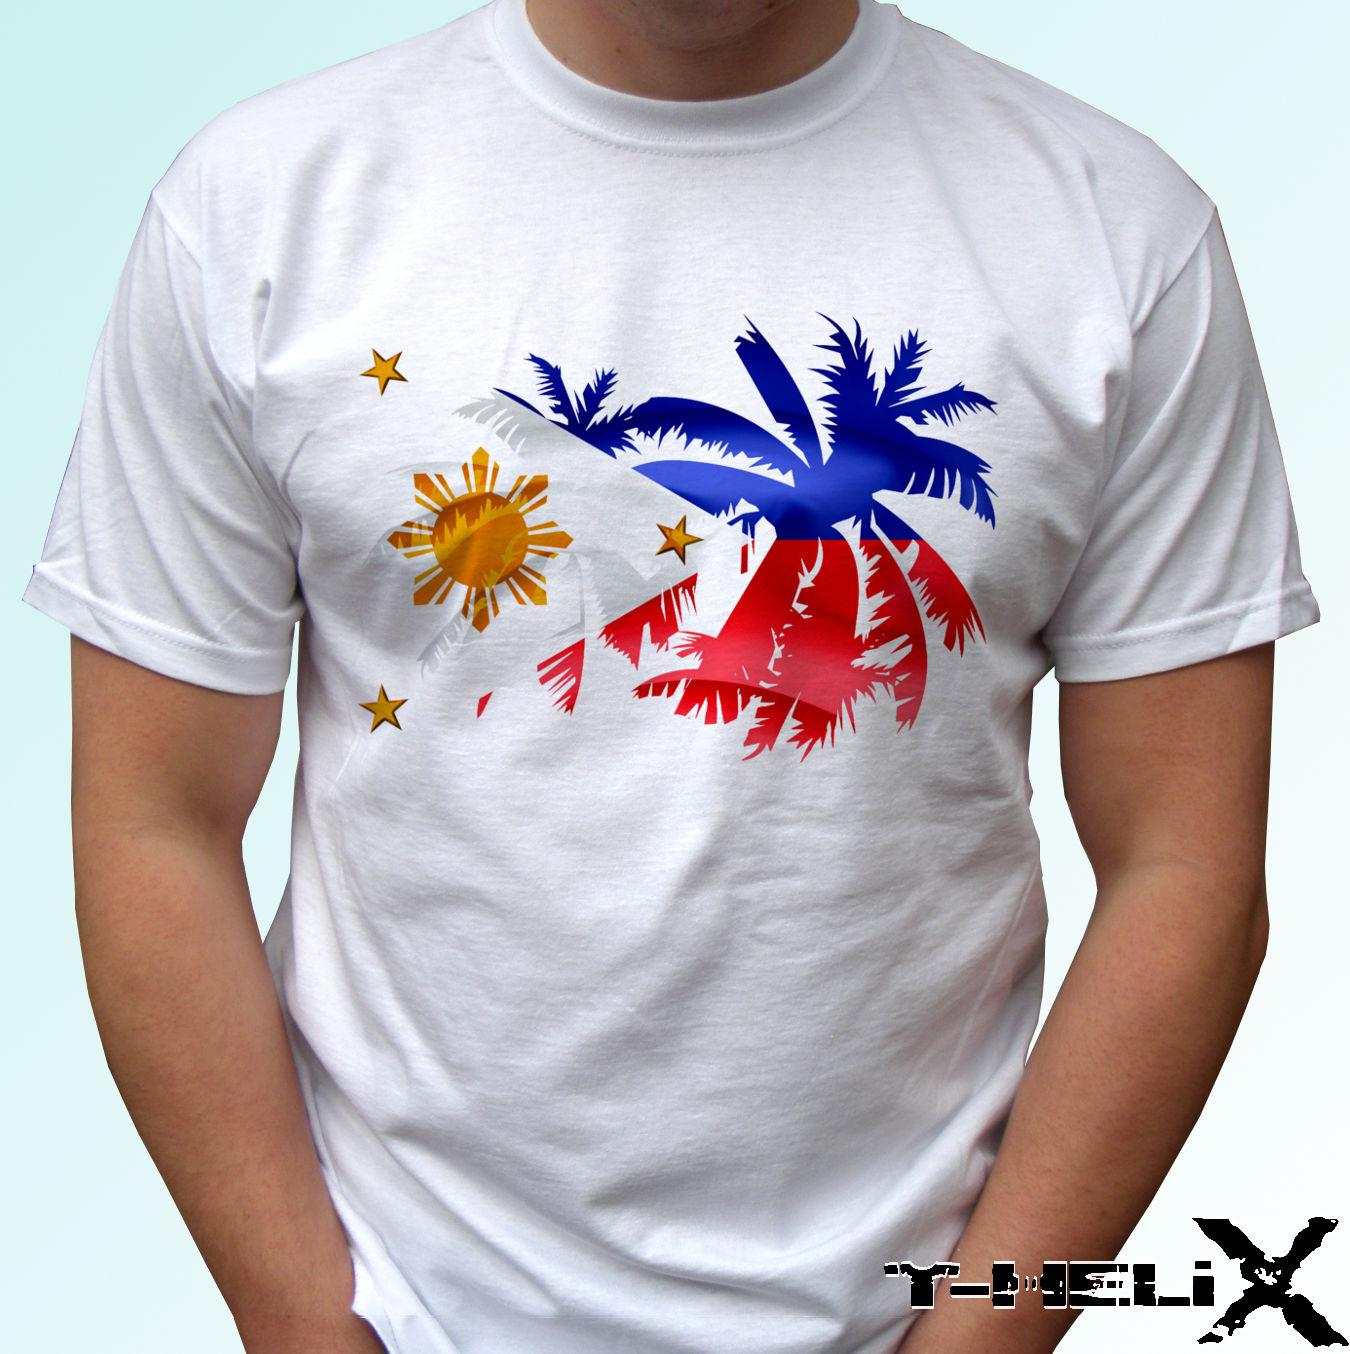 05dfe80928801 Philippines palm flag - white t shirt top design - mens womens kids & baby  sizes 100% Cotton Short Sleeve, O-Neck T Shirt,Top Tee Basic,